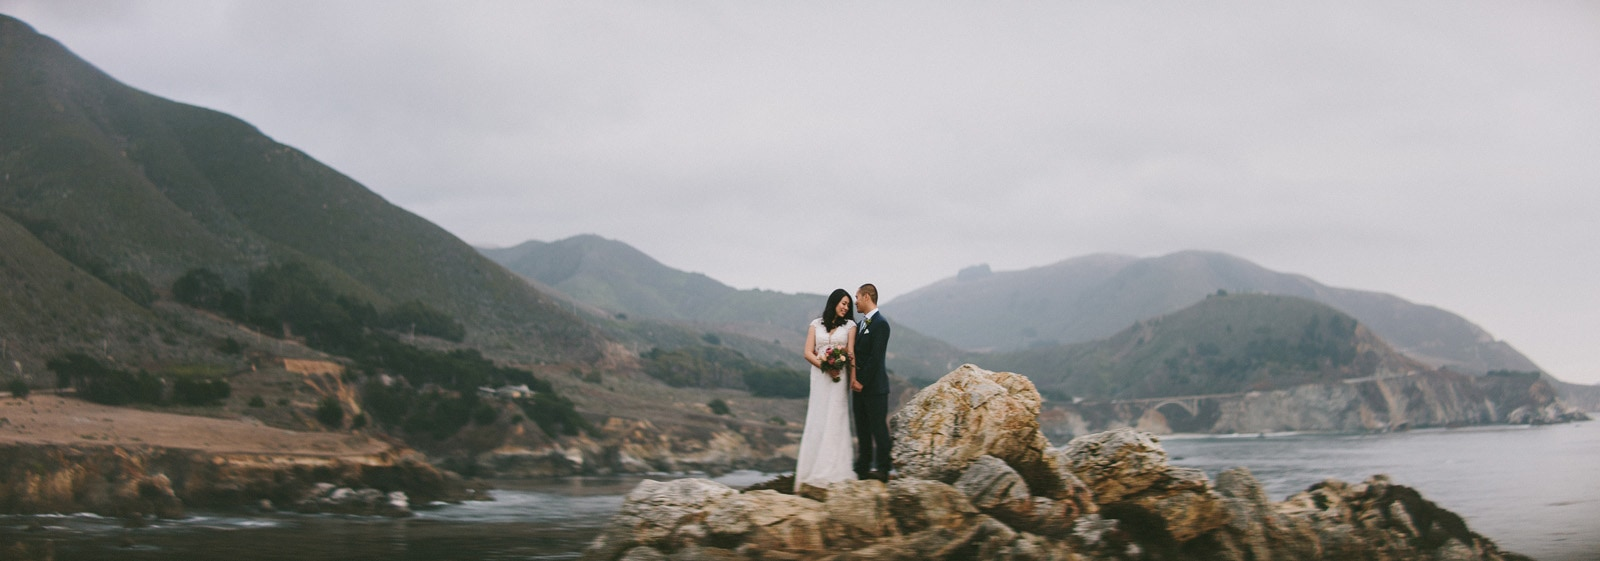 Glen_Oaks_Big_Sur_Wedding_033